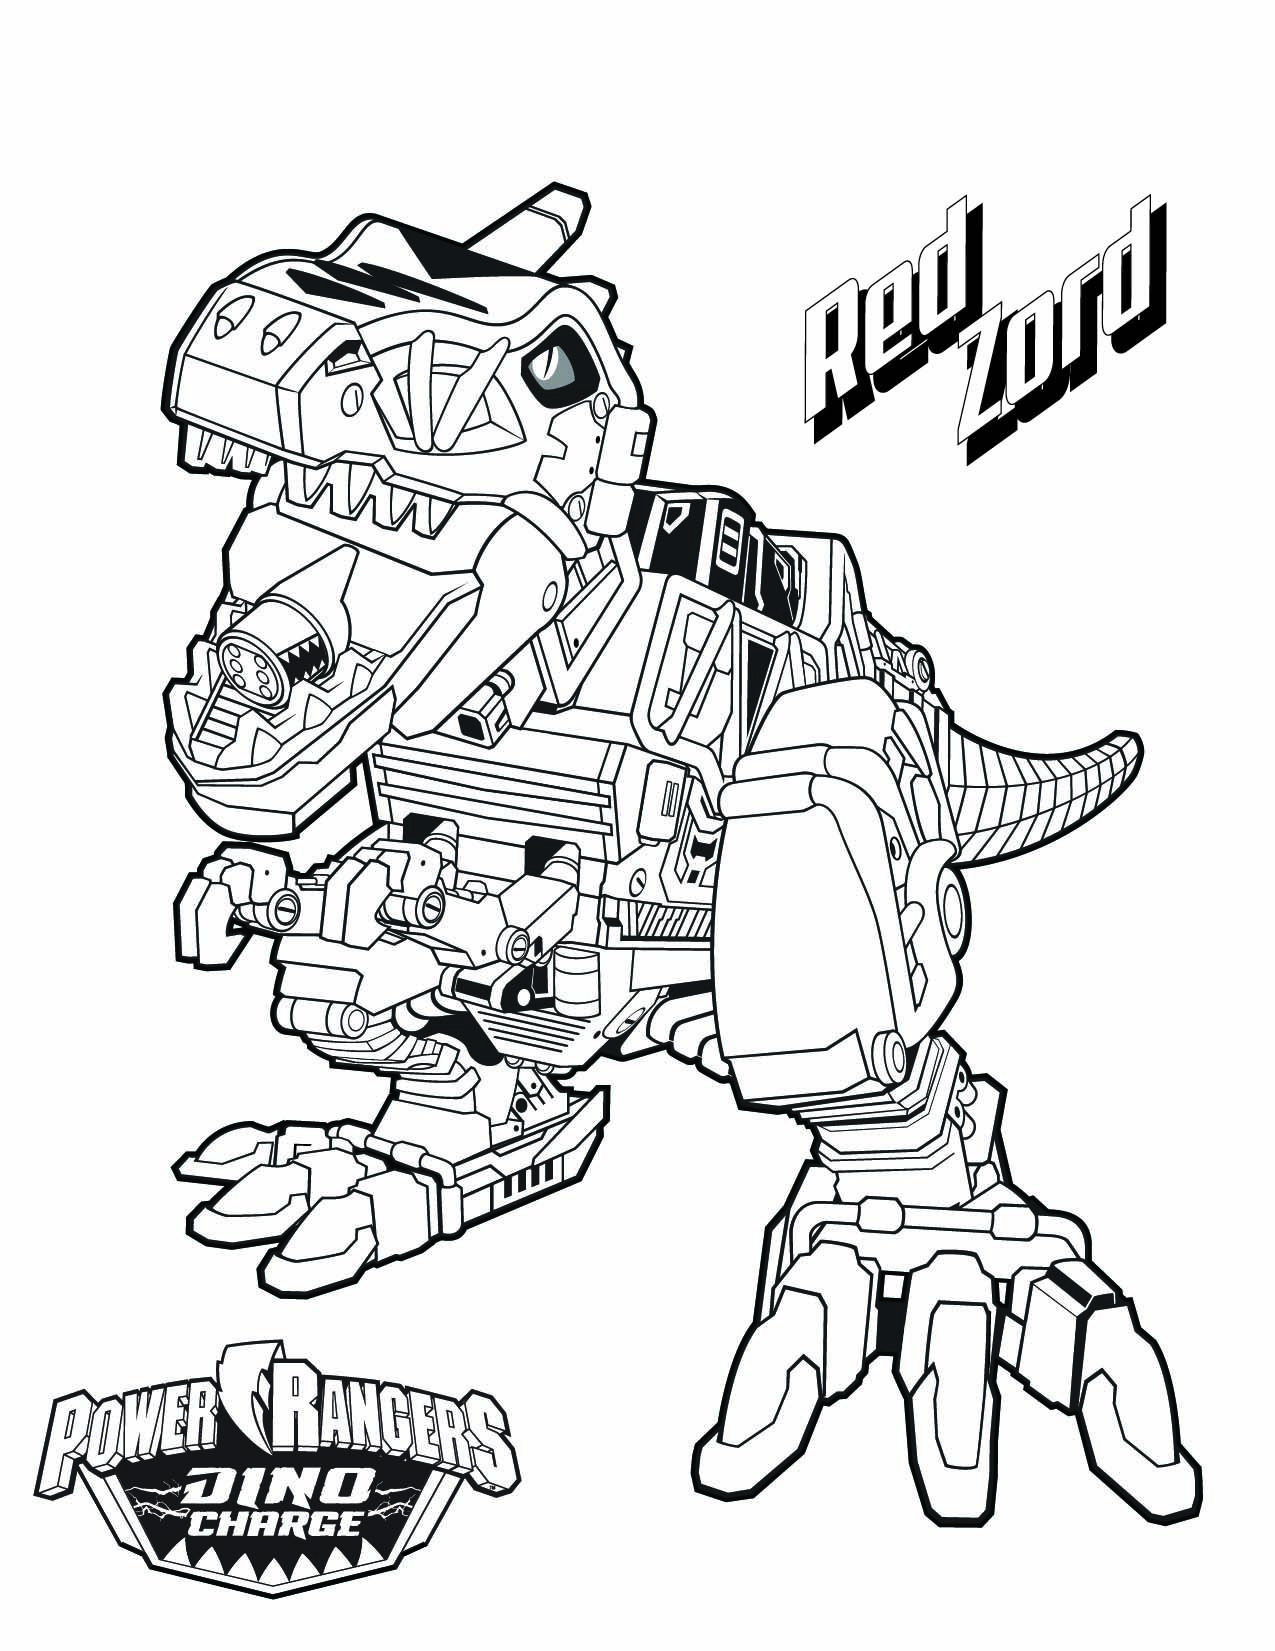 Tyrannosaurus rex coloring page power rangers the official power rangers website robot dinosaur